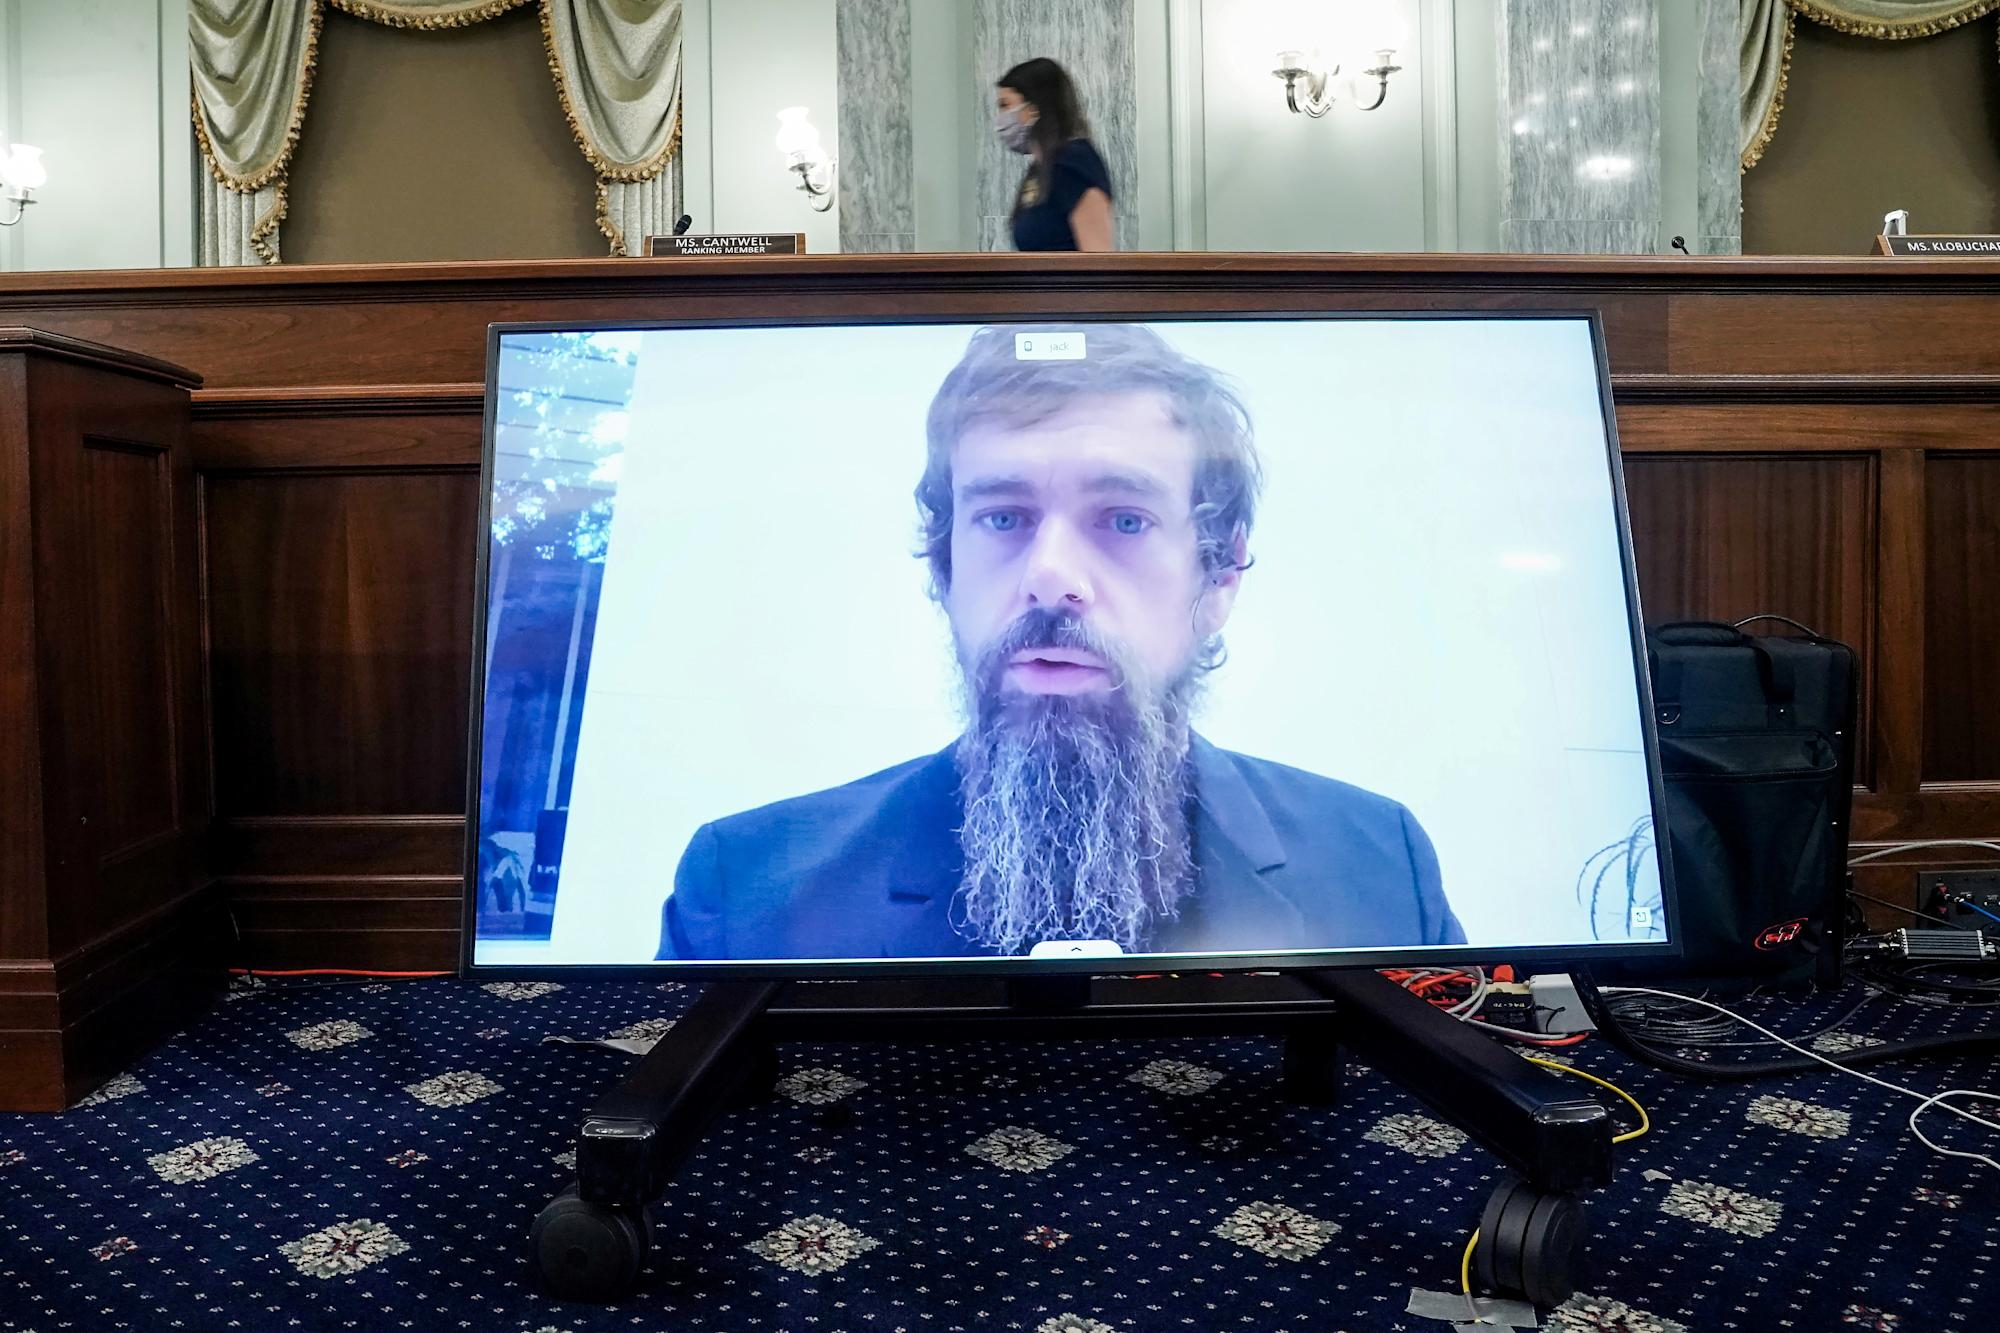 Section 230 likely to take center stage at Big Tech hearing: 'Everyone's looking for something to blame'